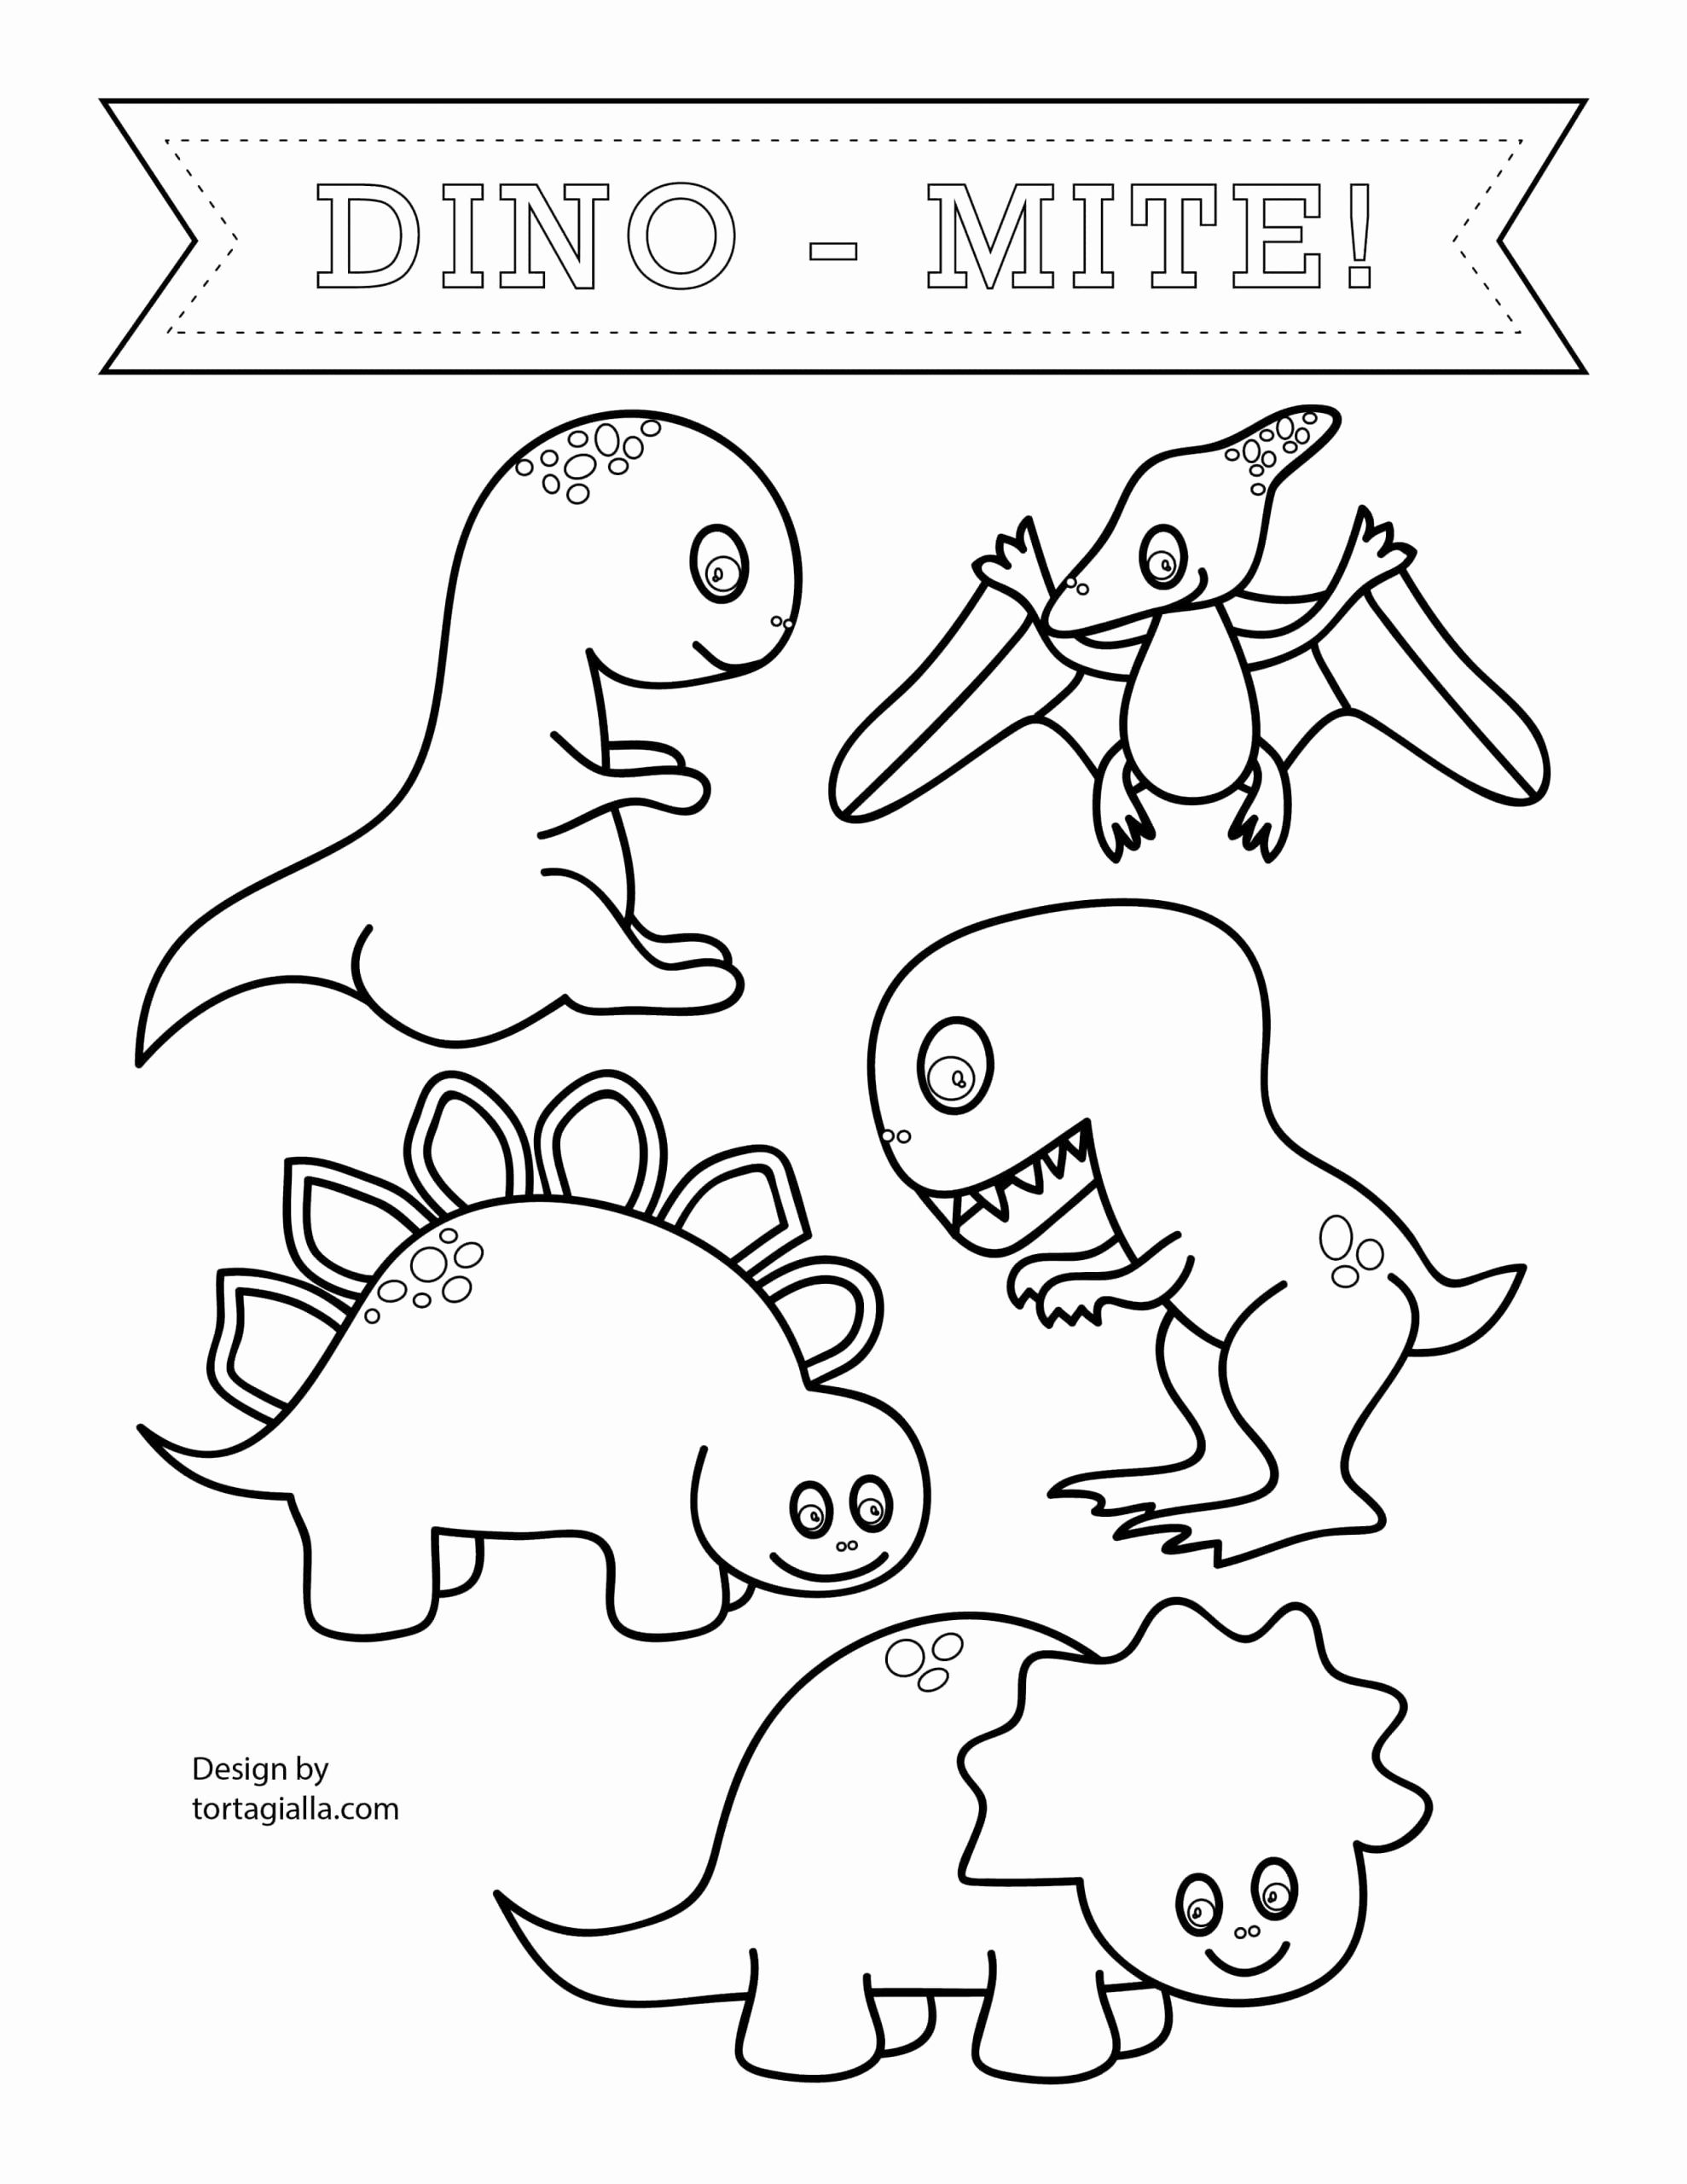 Lego Dino Coloring Pages For Kids Zoo Animal Coloring Pages Halloween Coloring Pages Pokemon Coloring Pages [ 2560 x 1978 Pixel ]